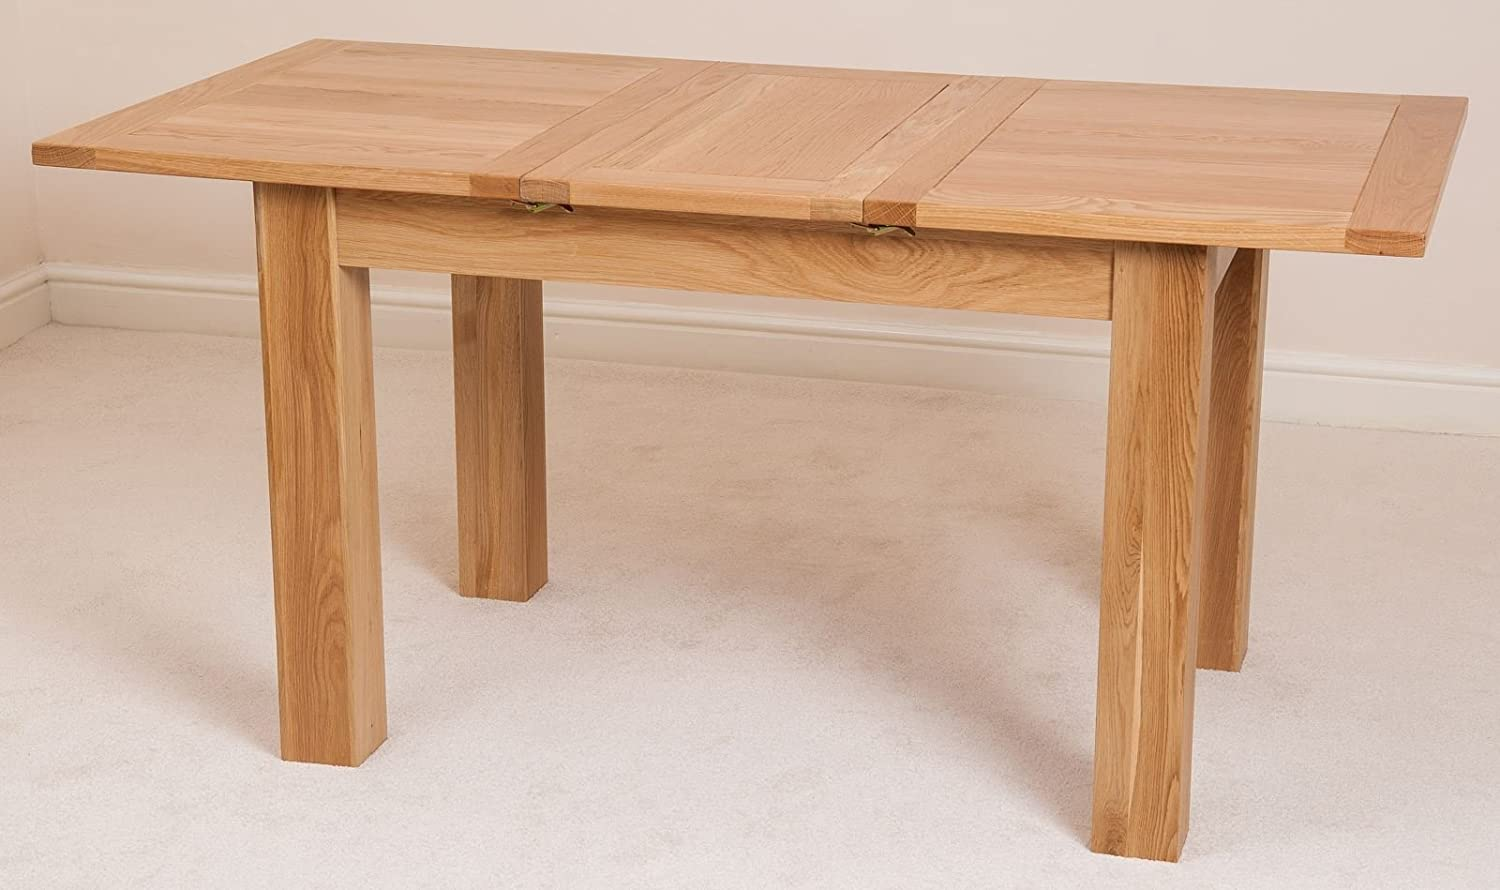 hampton solid oak extending dining table 120 160 cm amazoncouk kitchen u0026 home